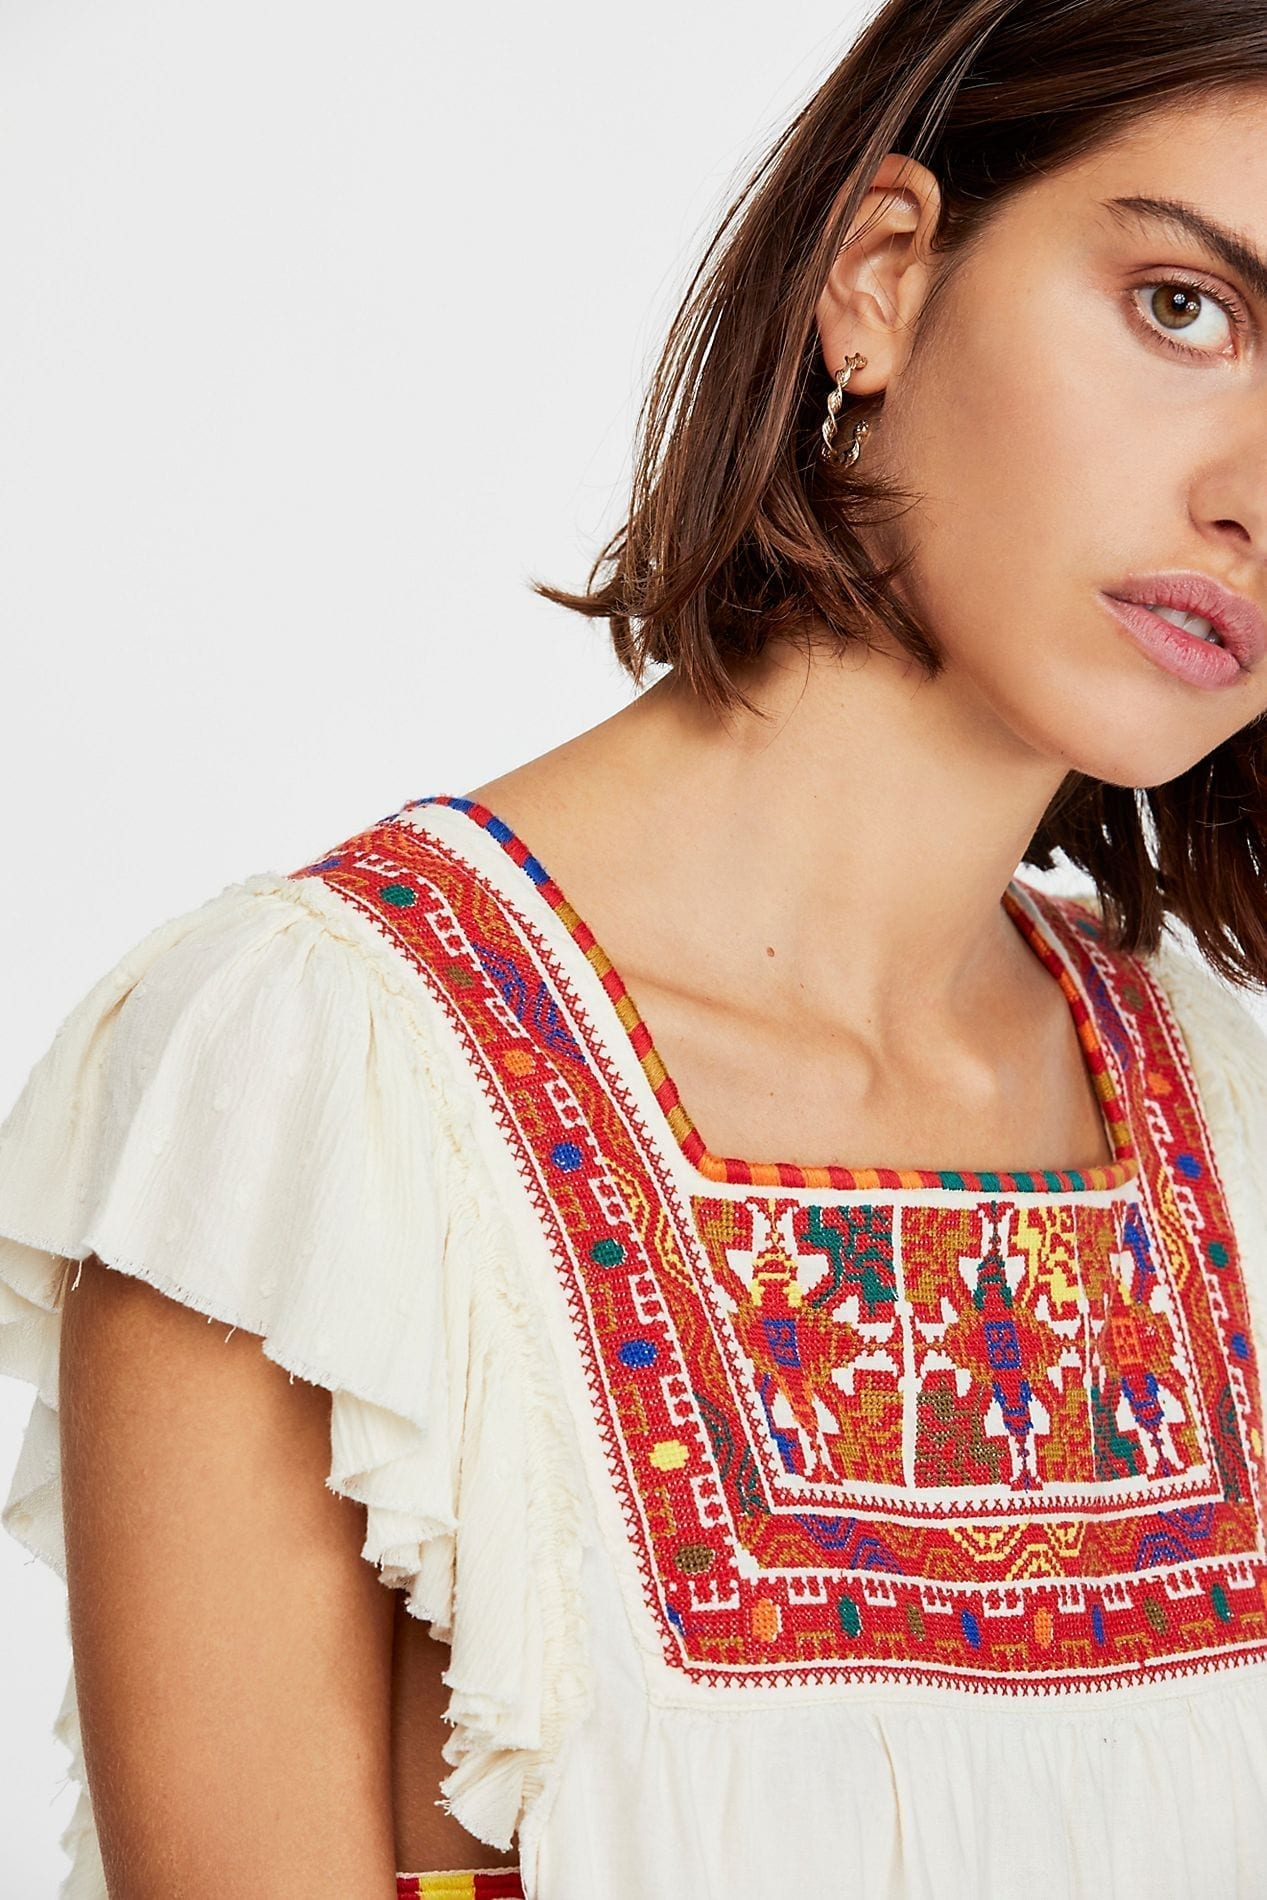 91f329ae4e7 FREEPEOPLE Day Glow Mini White Dress - We Select Dresses